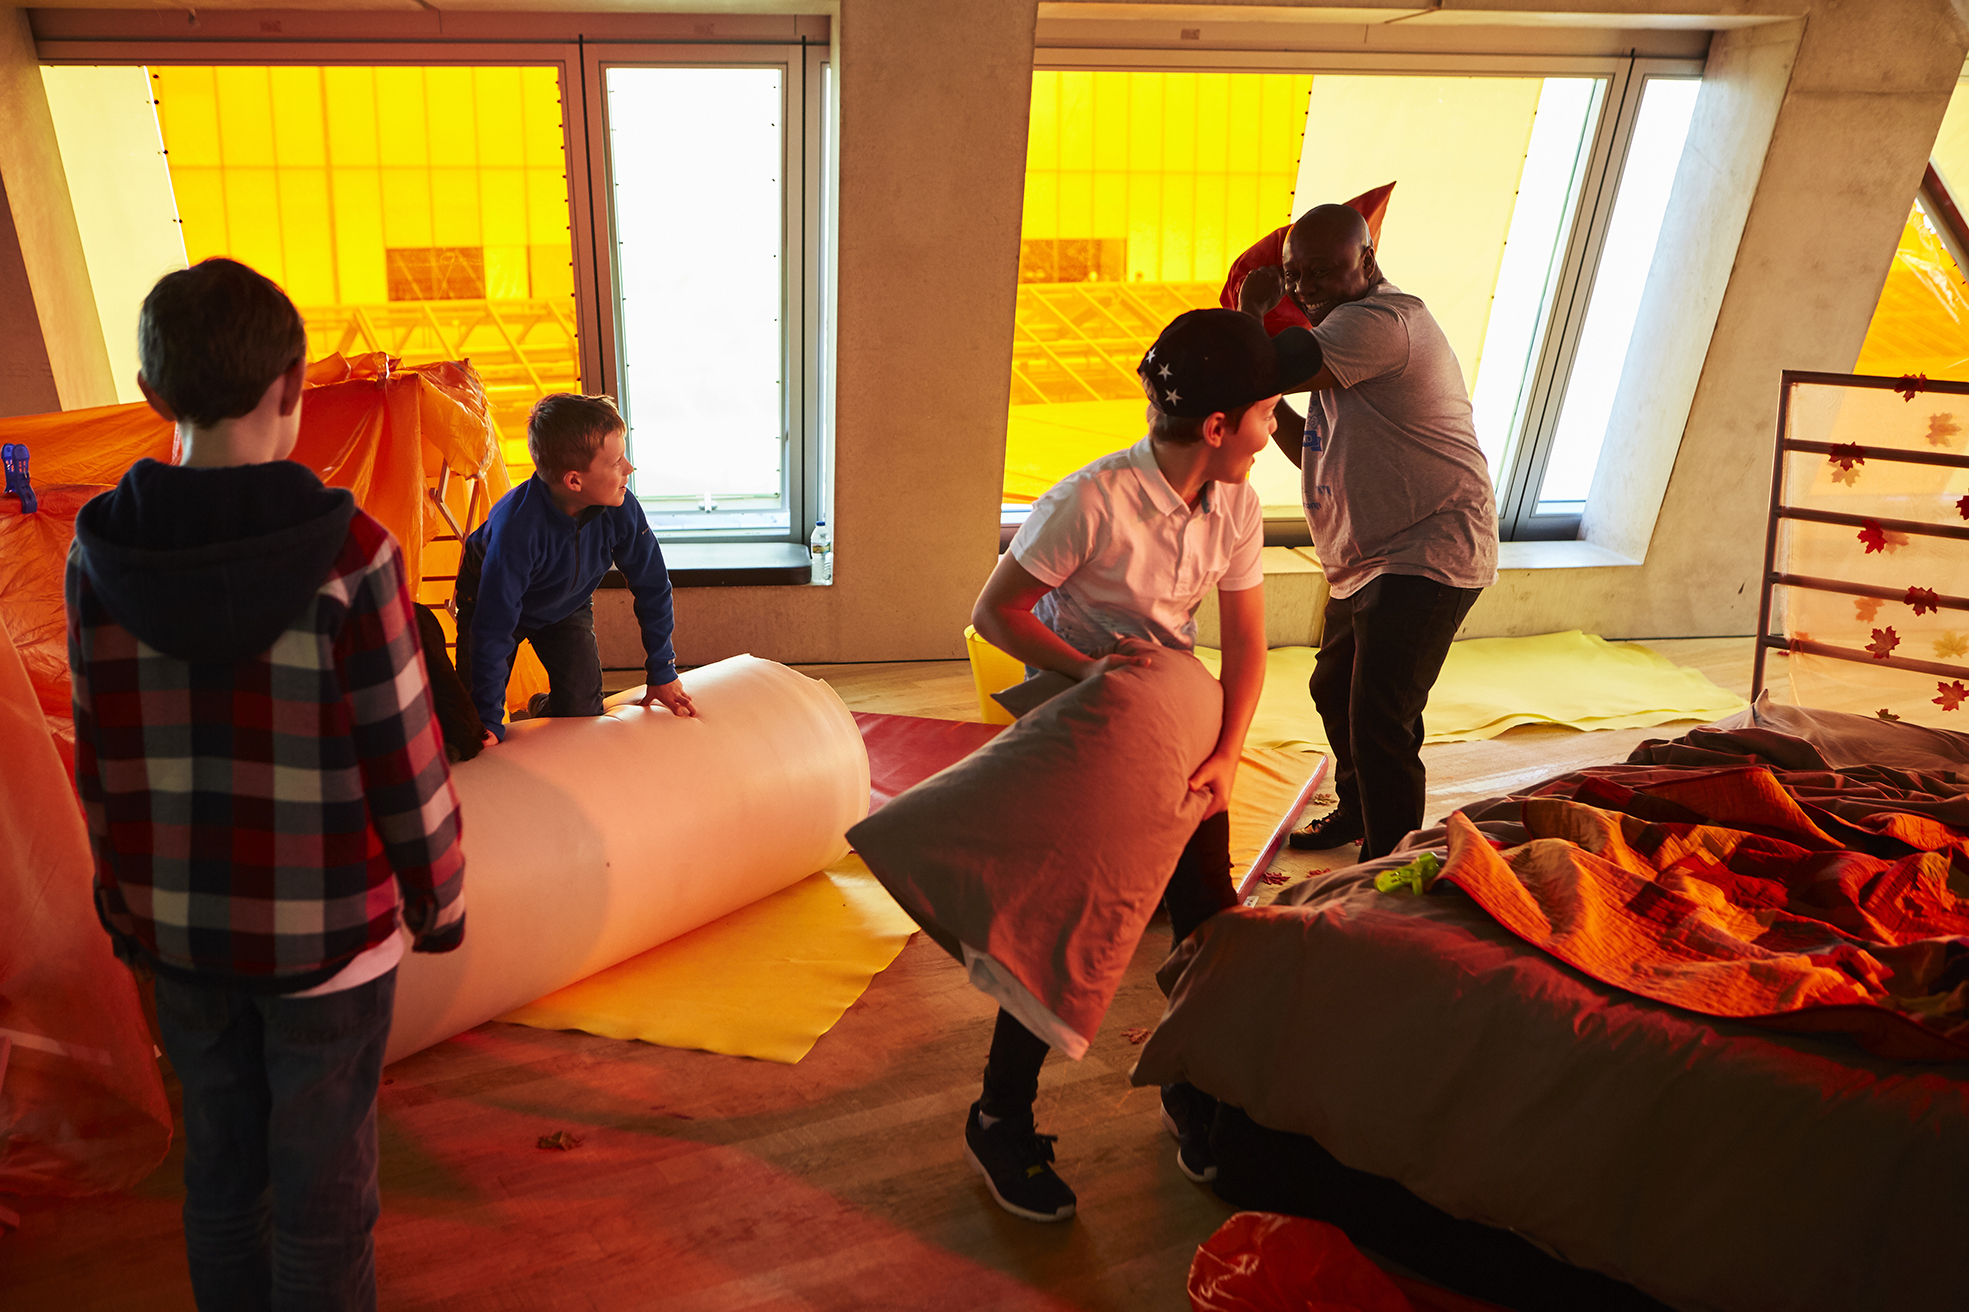 A photograph of David Ogwe with a group of young people at a Touretteshero event at the Tate. David is smiling and having a playful pillow fight with another child. Two children look on. The floor is strewn with blankets and bean bags.